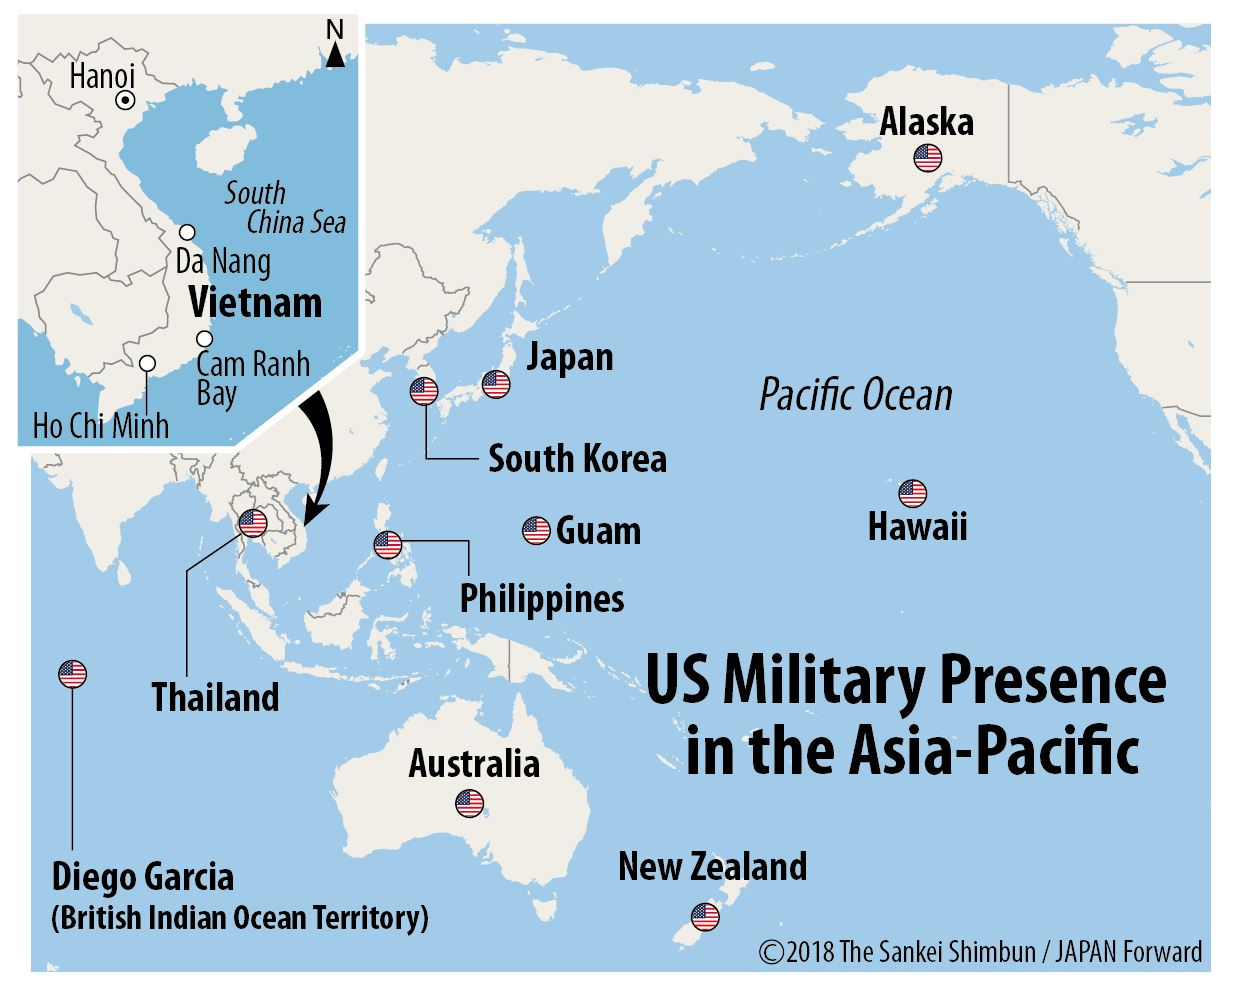 Map of US Military Presence in the Asia-Pacific